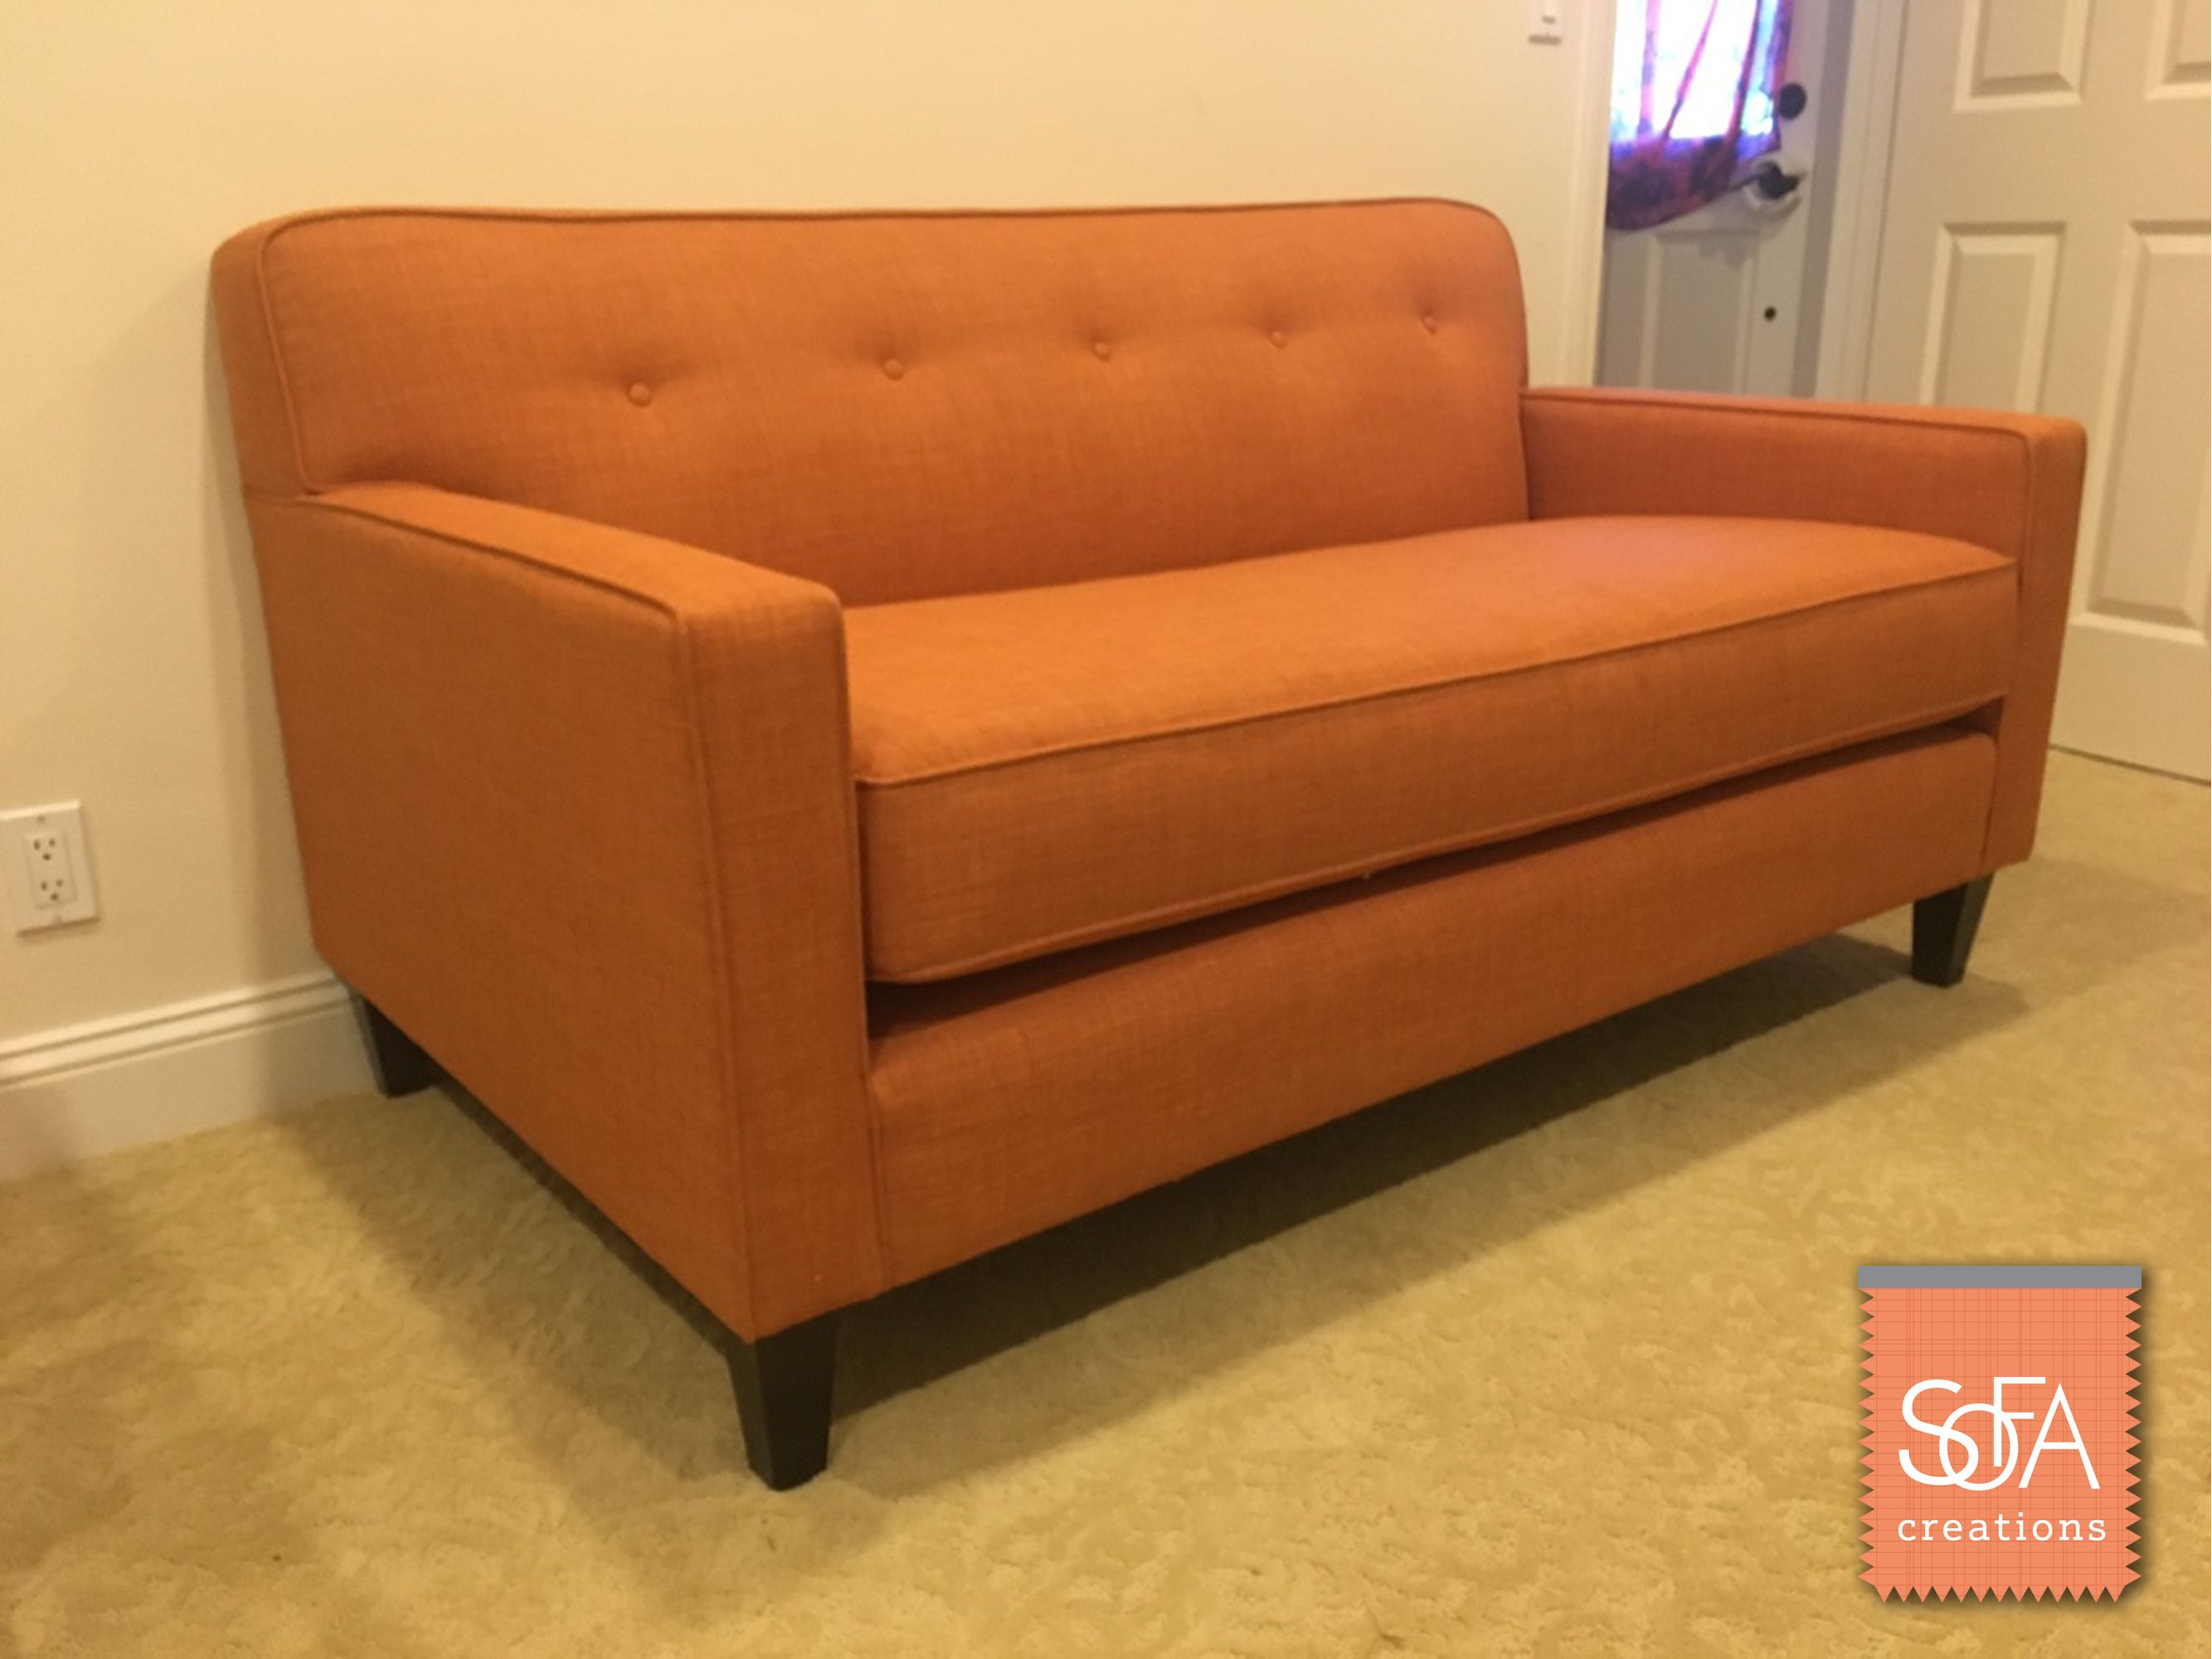 We Recently Delivered A Dante Loveseat To One Of Our Customers At Sofa Creations